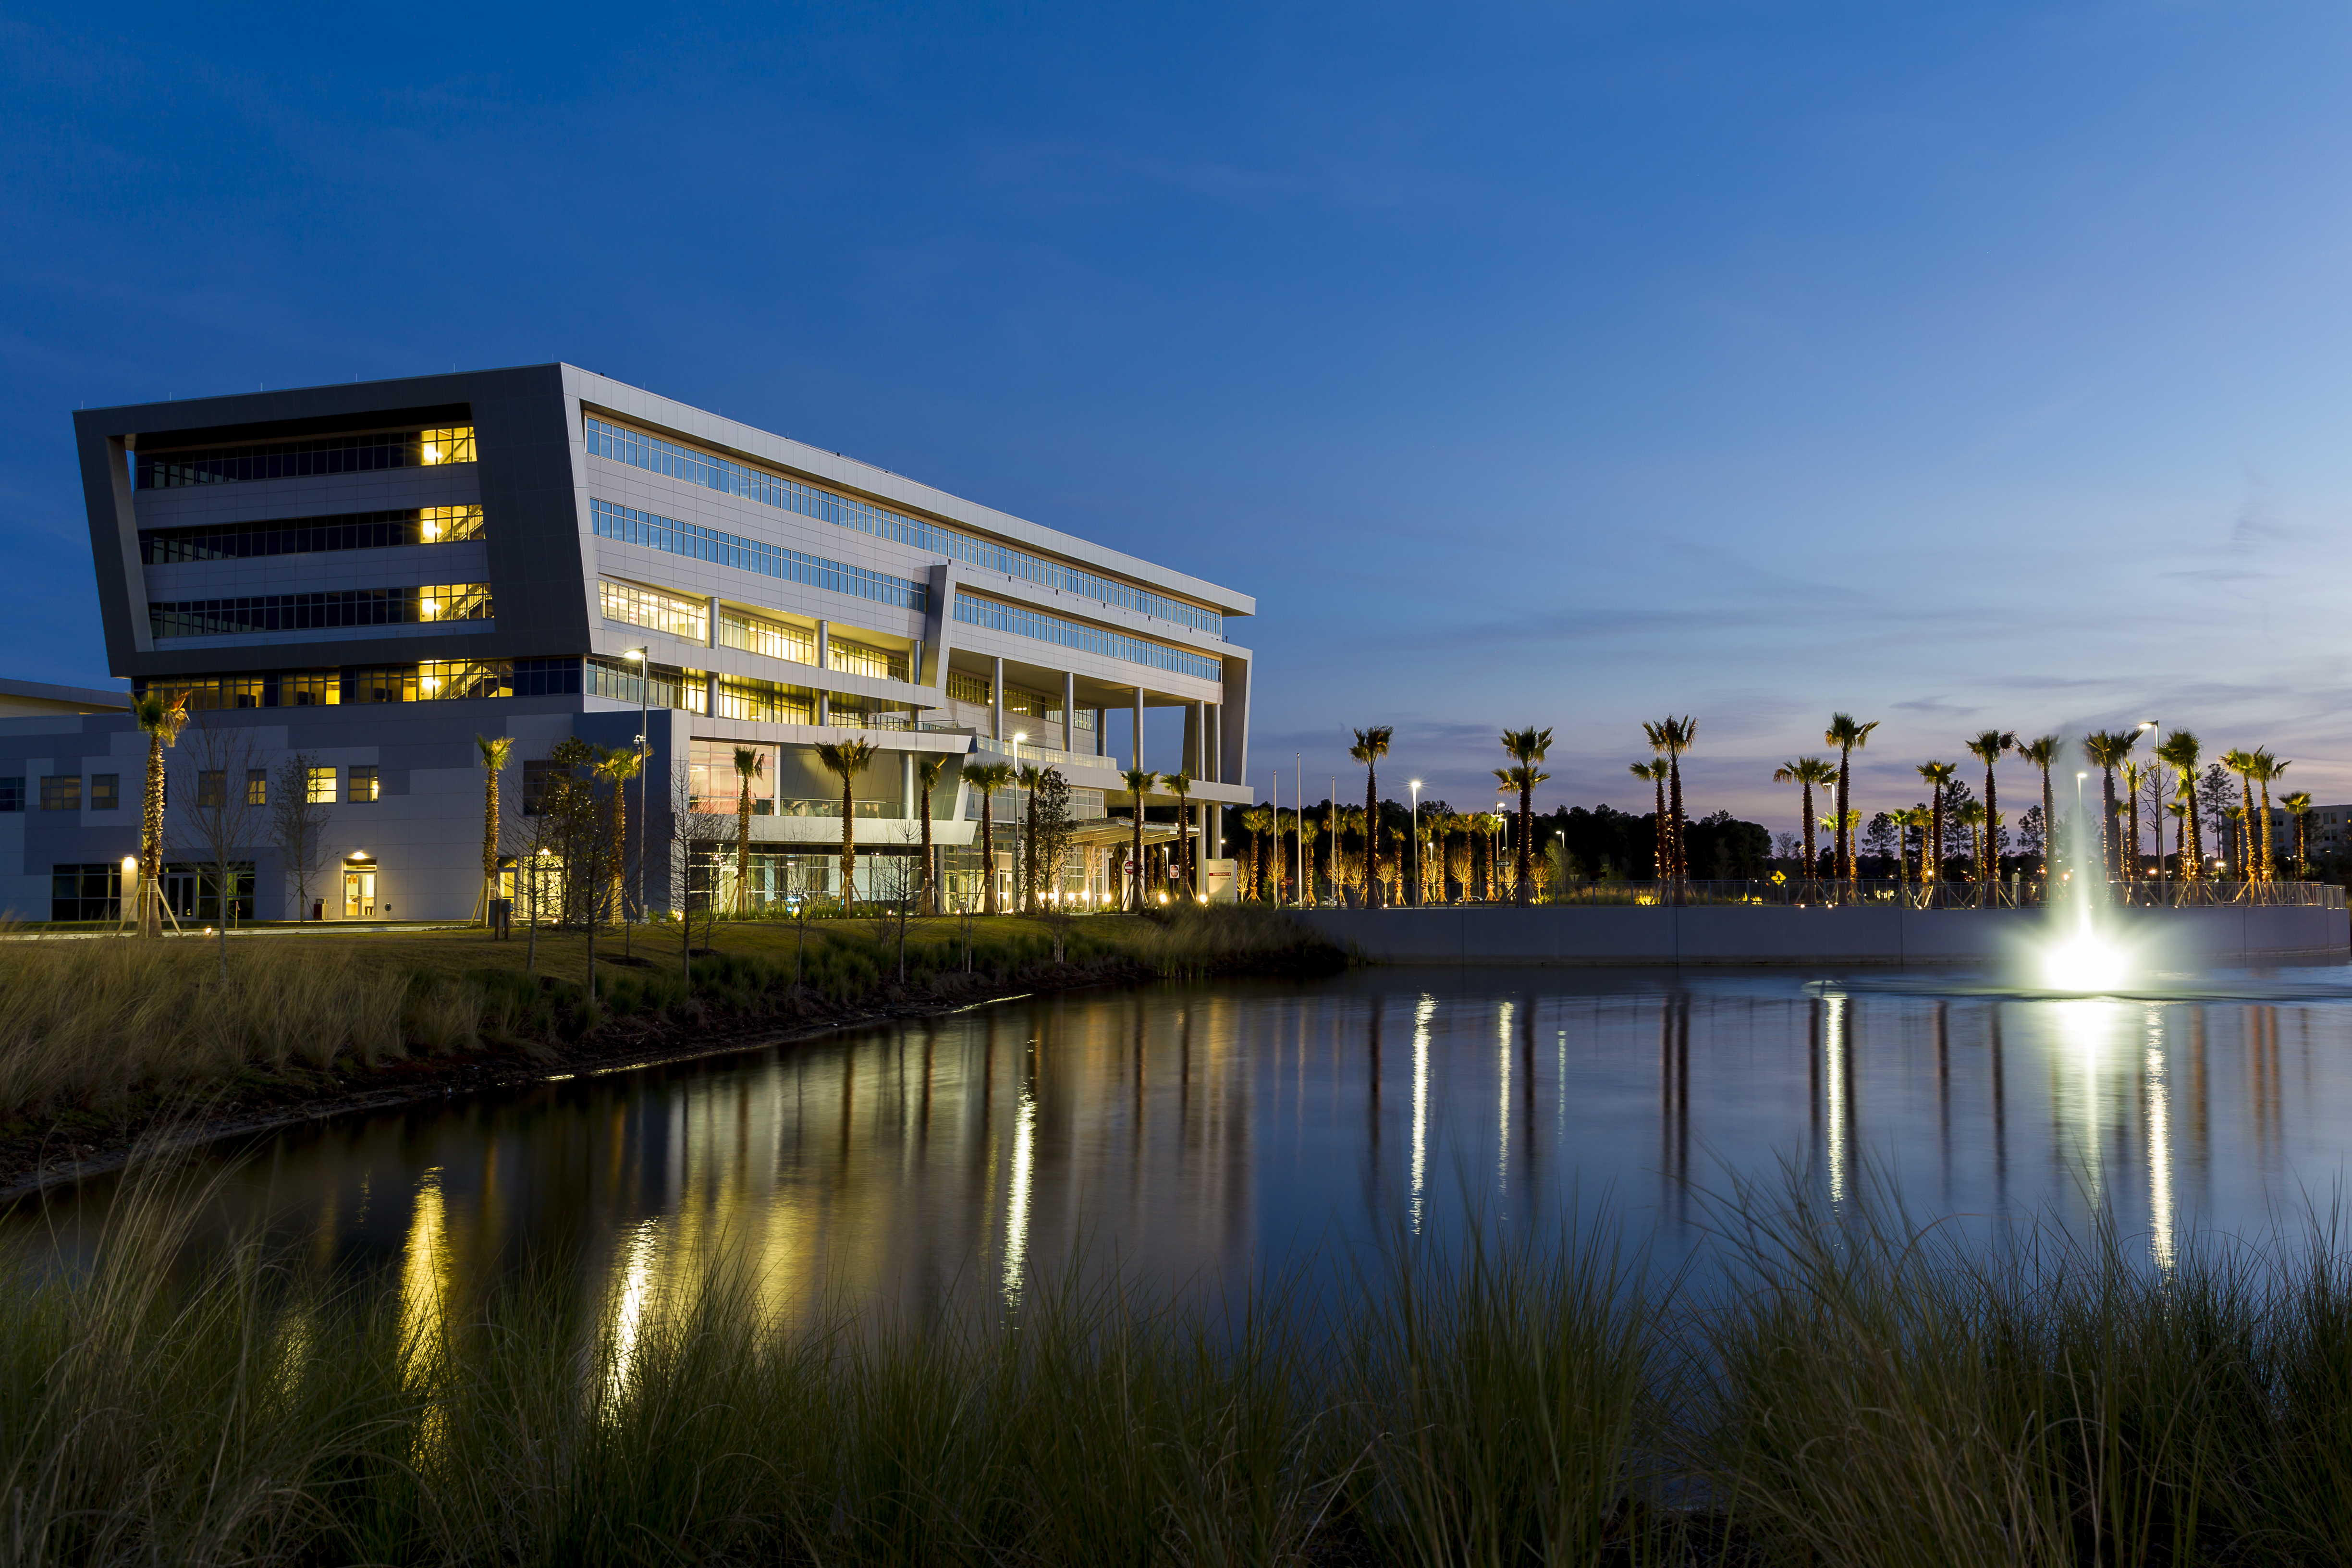 University of Florida Health Jacksonville | Architect Magazine